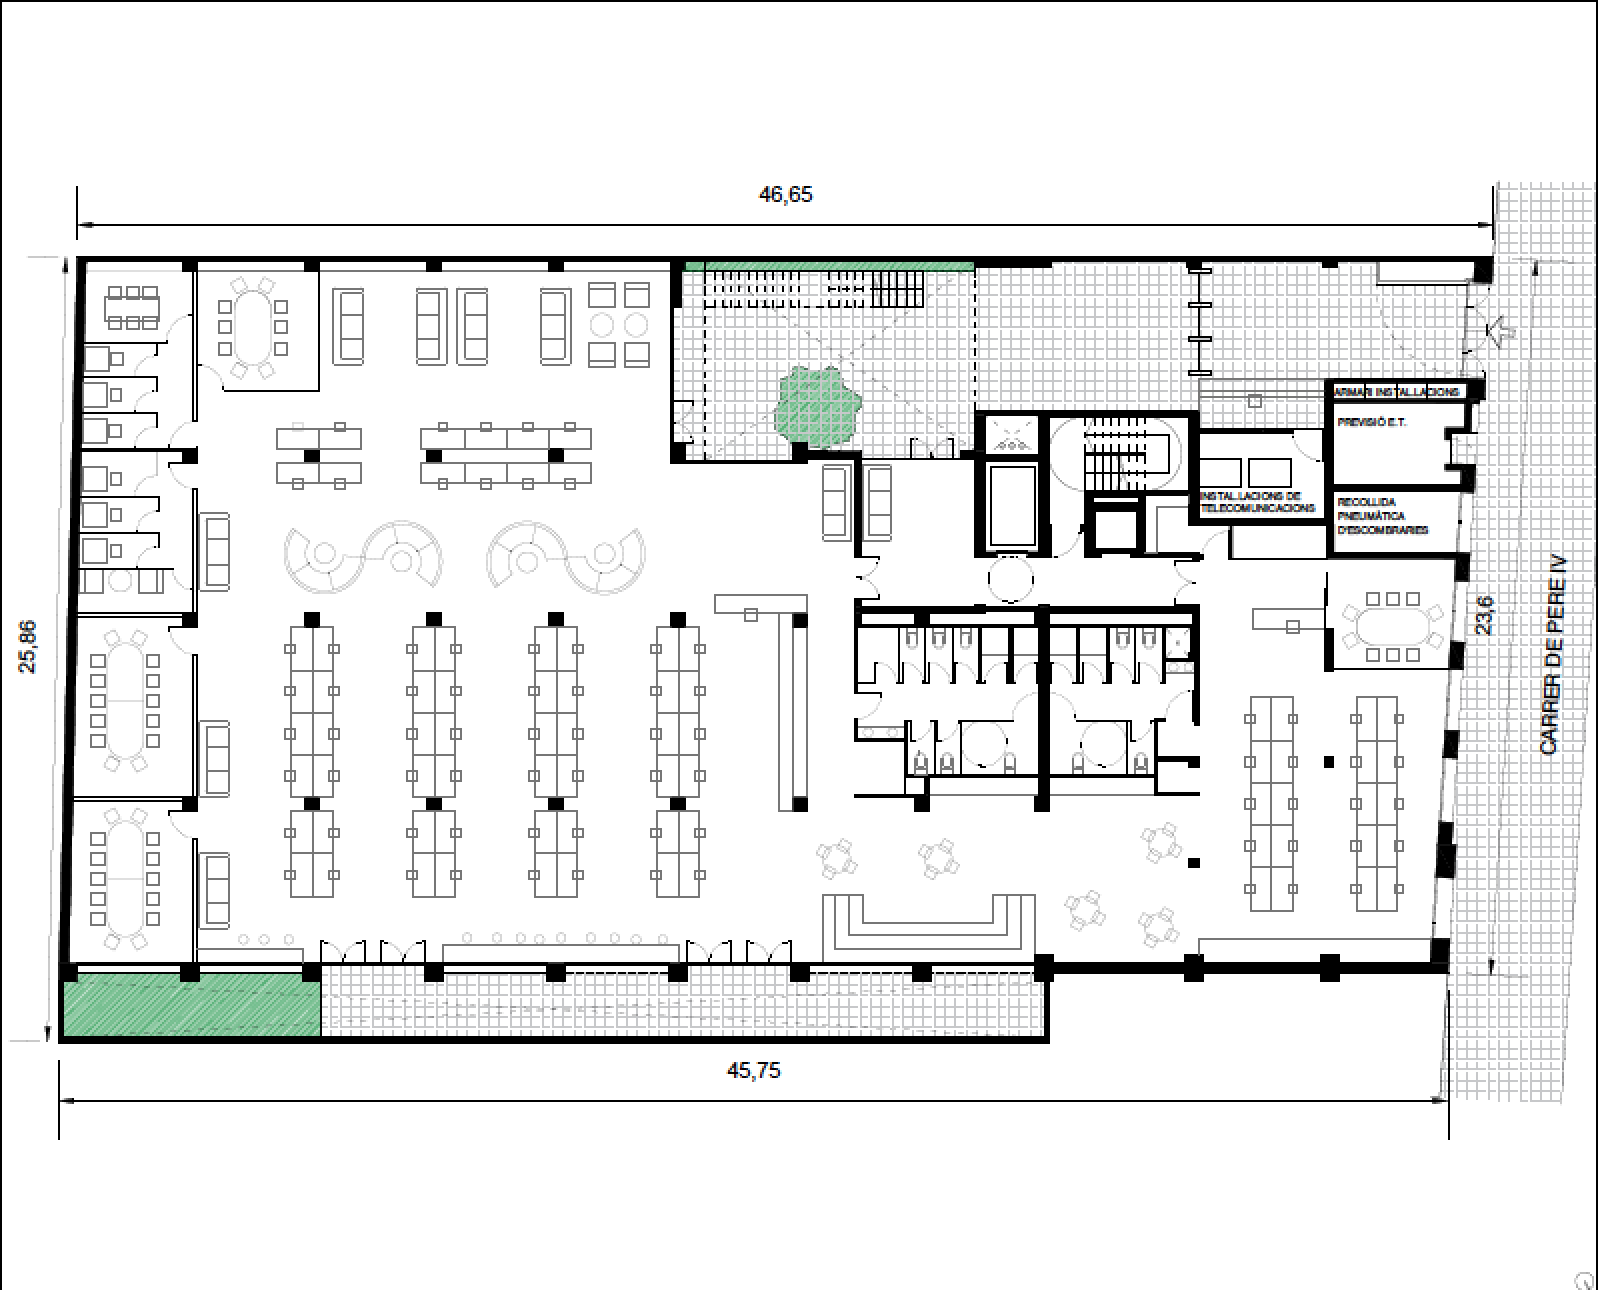 Single tenantLow density - Approx 358 workstations - 10m2/workstation(Max building occupancy 710 people)